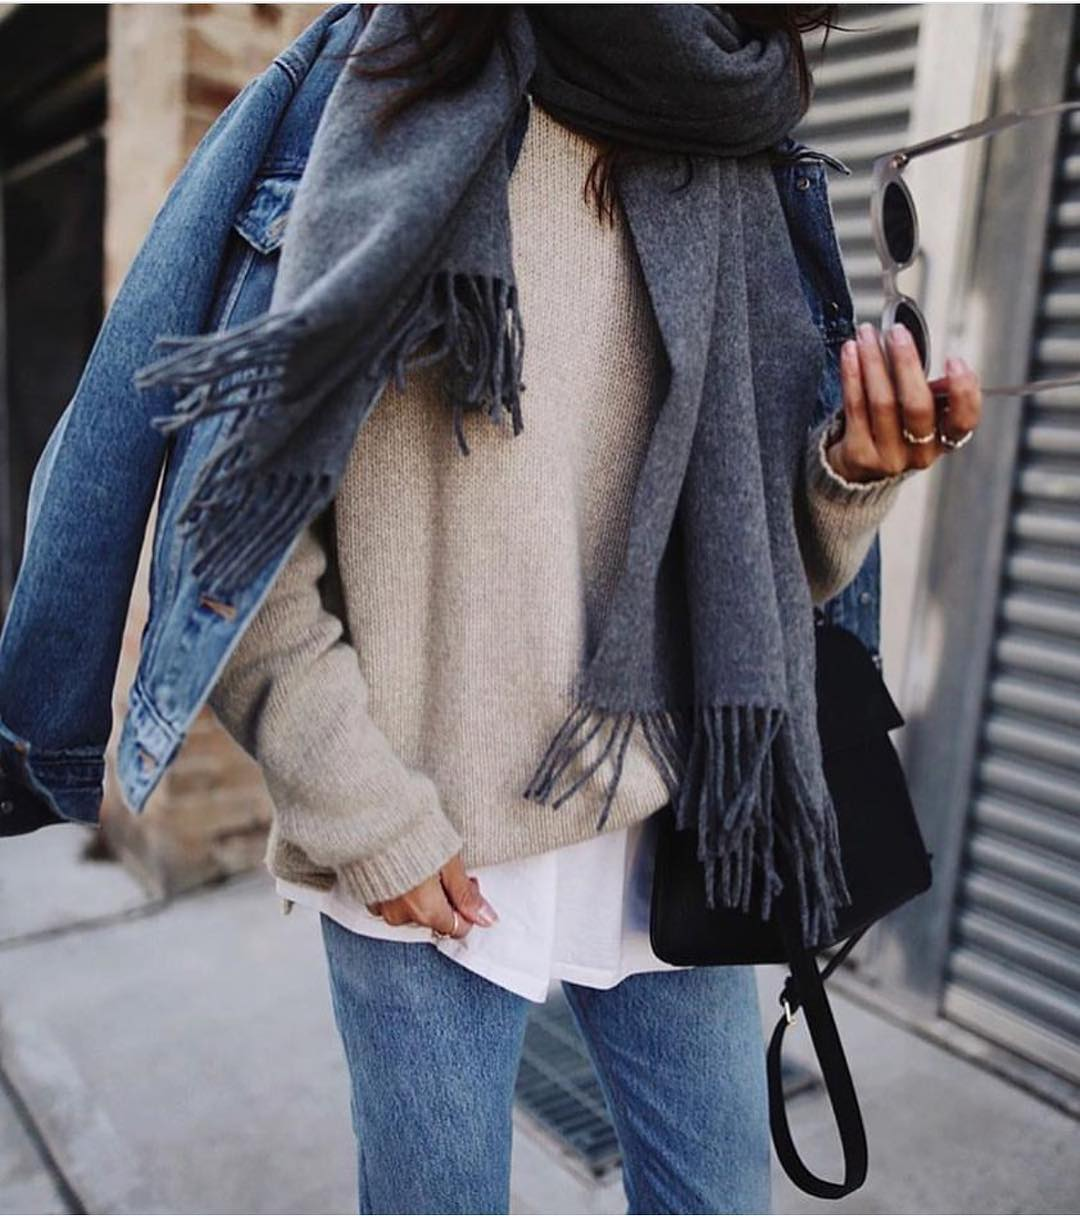 Layered OOTD For Fall: Denim Jacket, Sweater And Scarf 2019